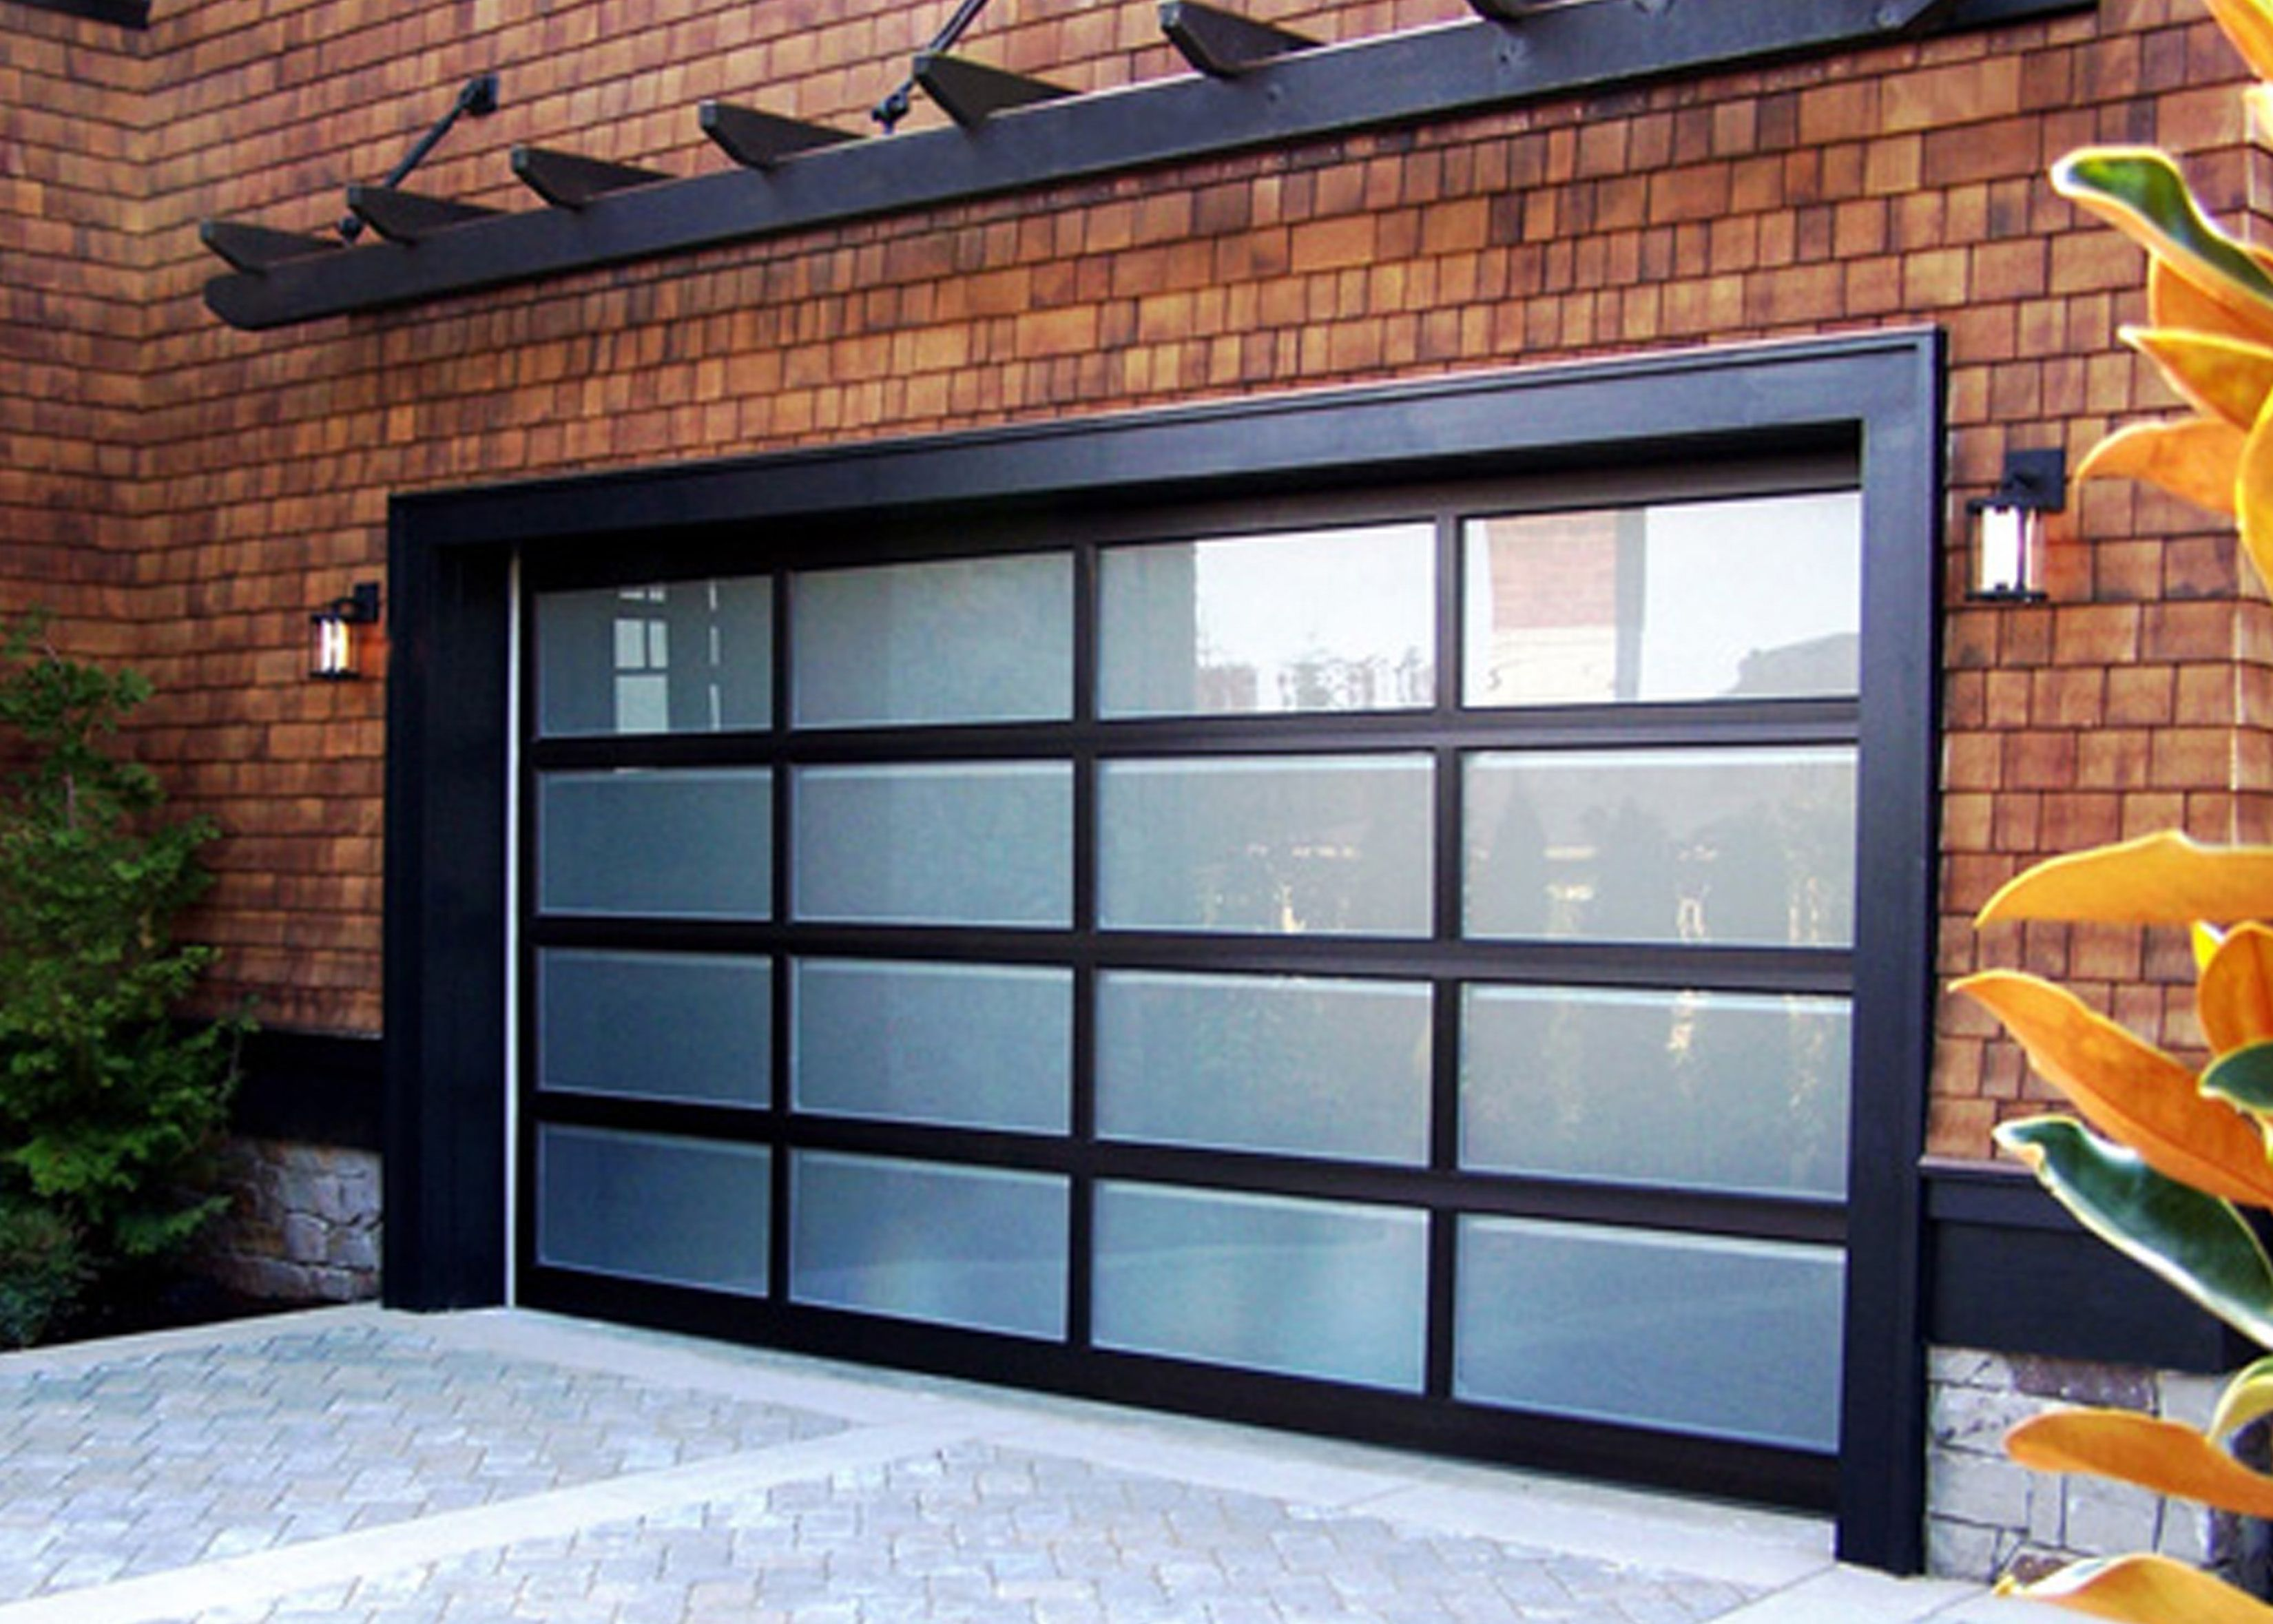 Glass garage door interior - Exciting Amarr Garage Doors For Inspiring Large Door Ideas Appealing Amarr Garage Doors With Wood